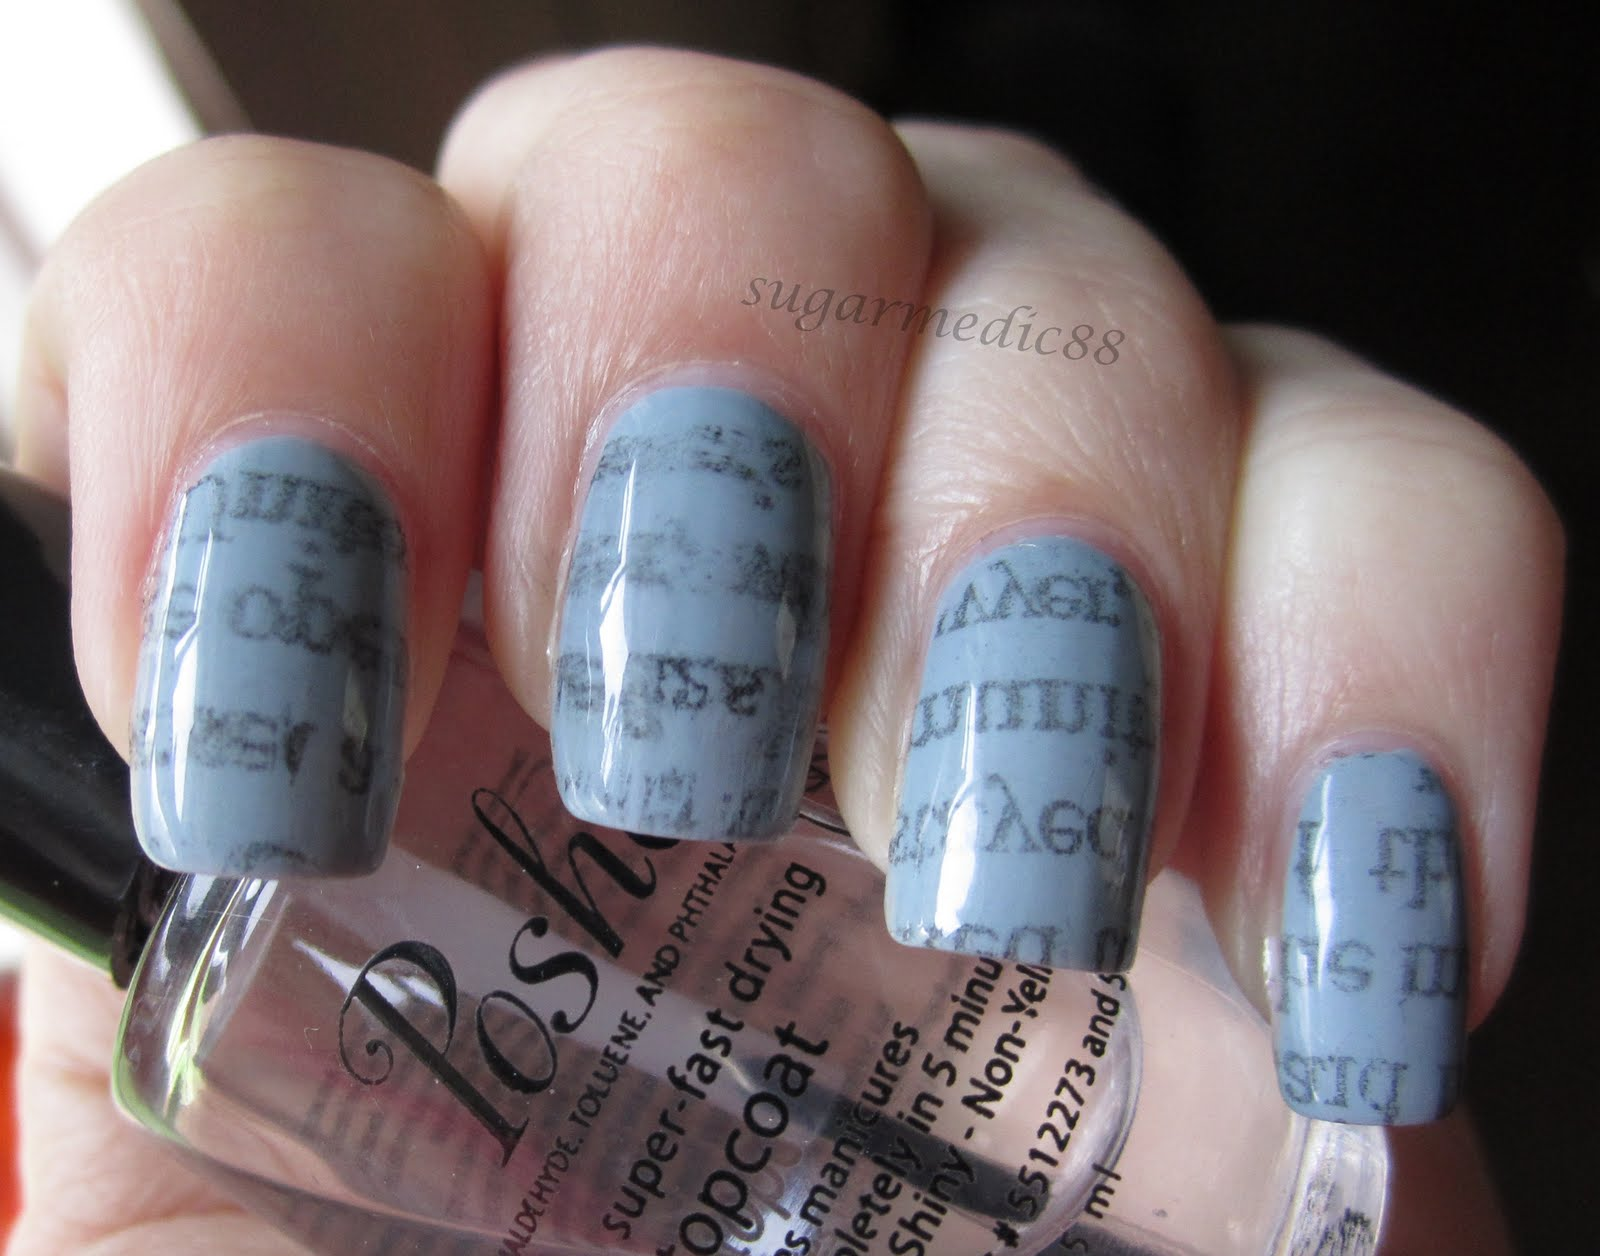 Attractive Newspaper Nails Without Newspaper Sketch - Nail Art Ideas ...